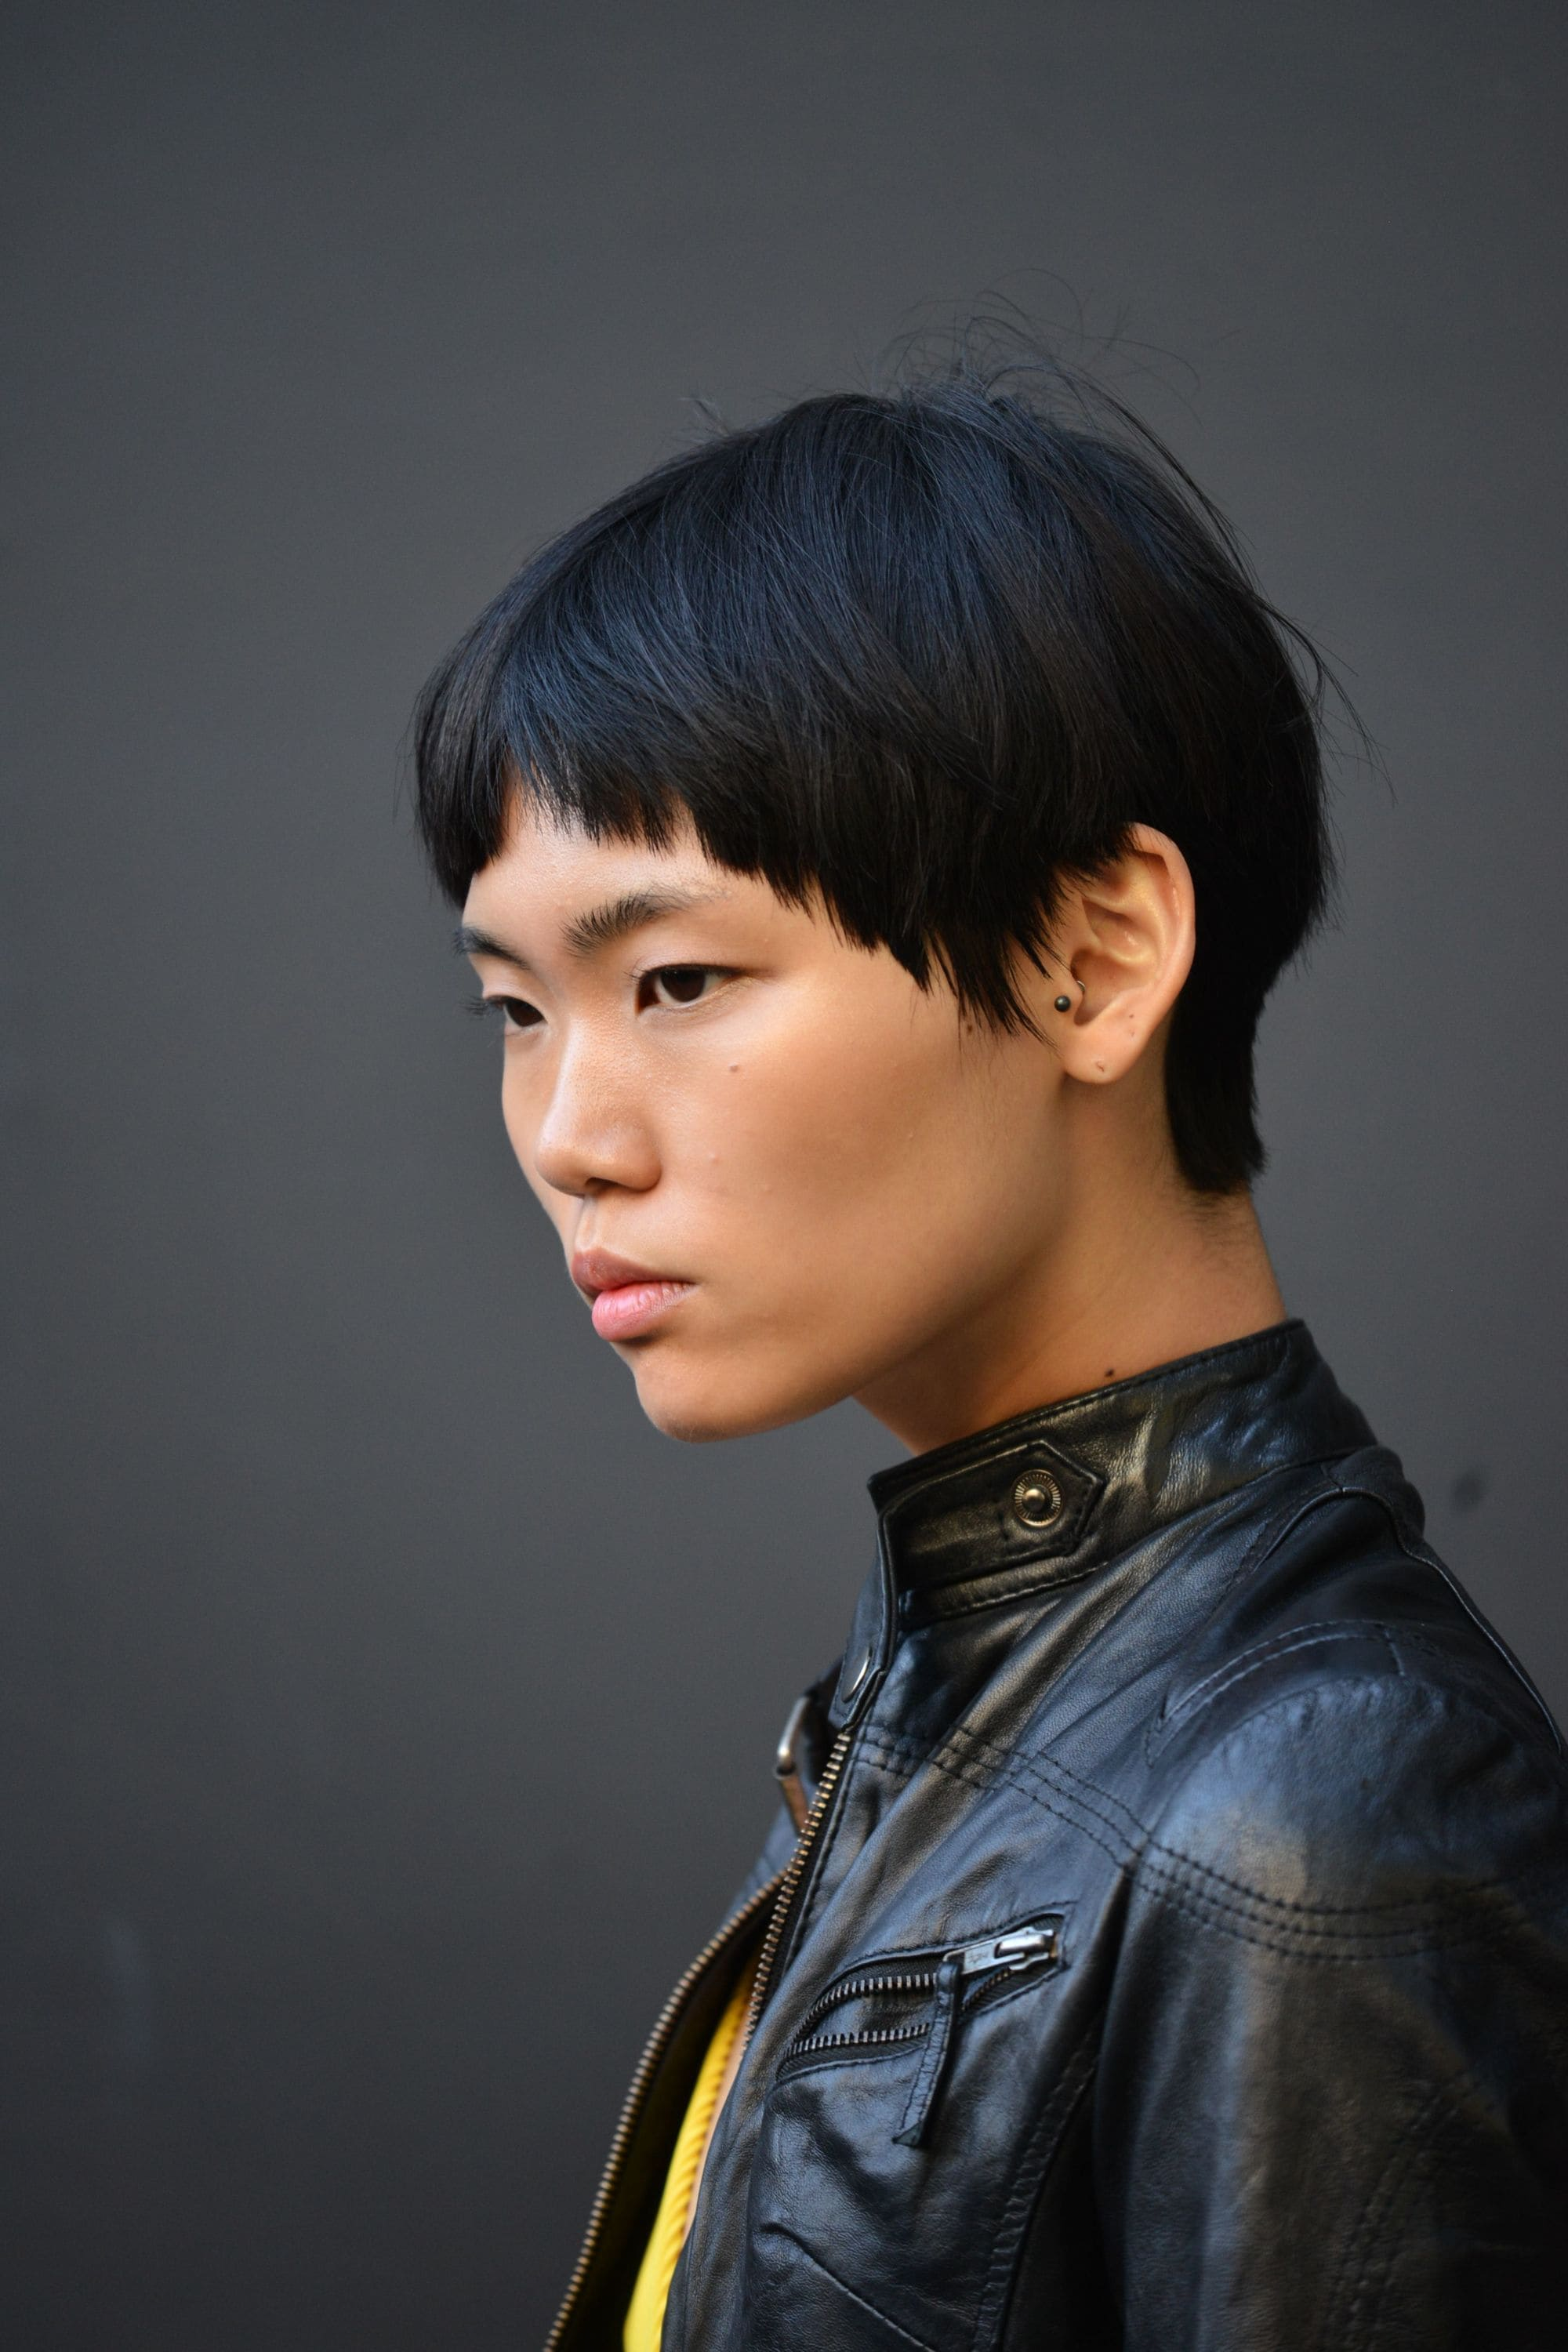 short asian hairstyles: street style shot of model with modern bowl haircut, wearing black leather jacket